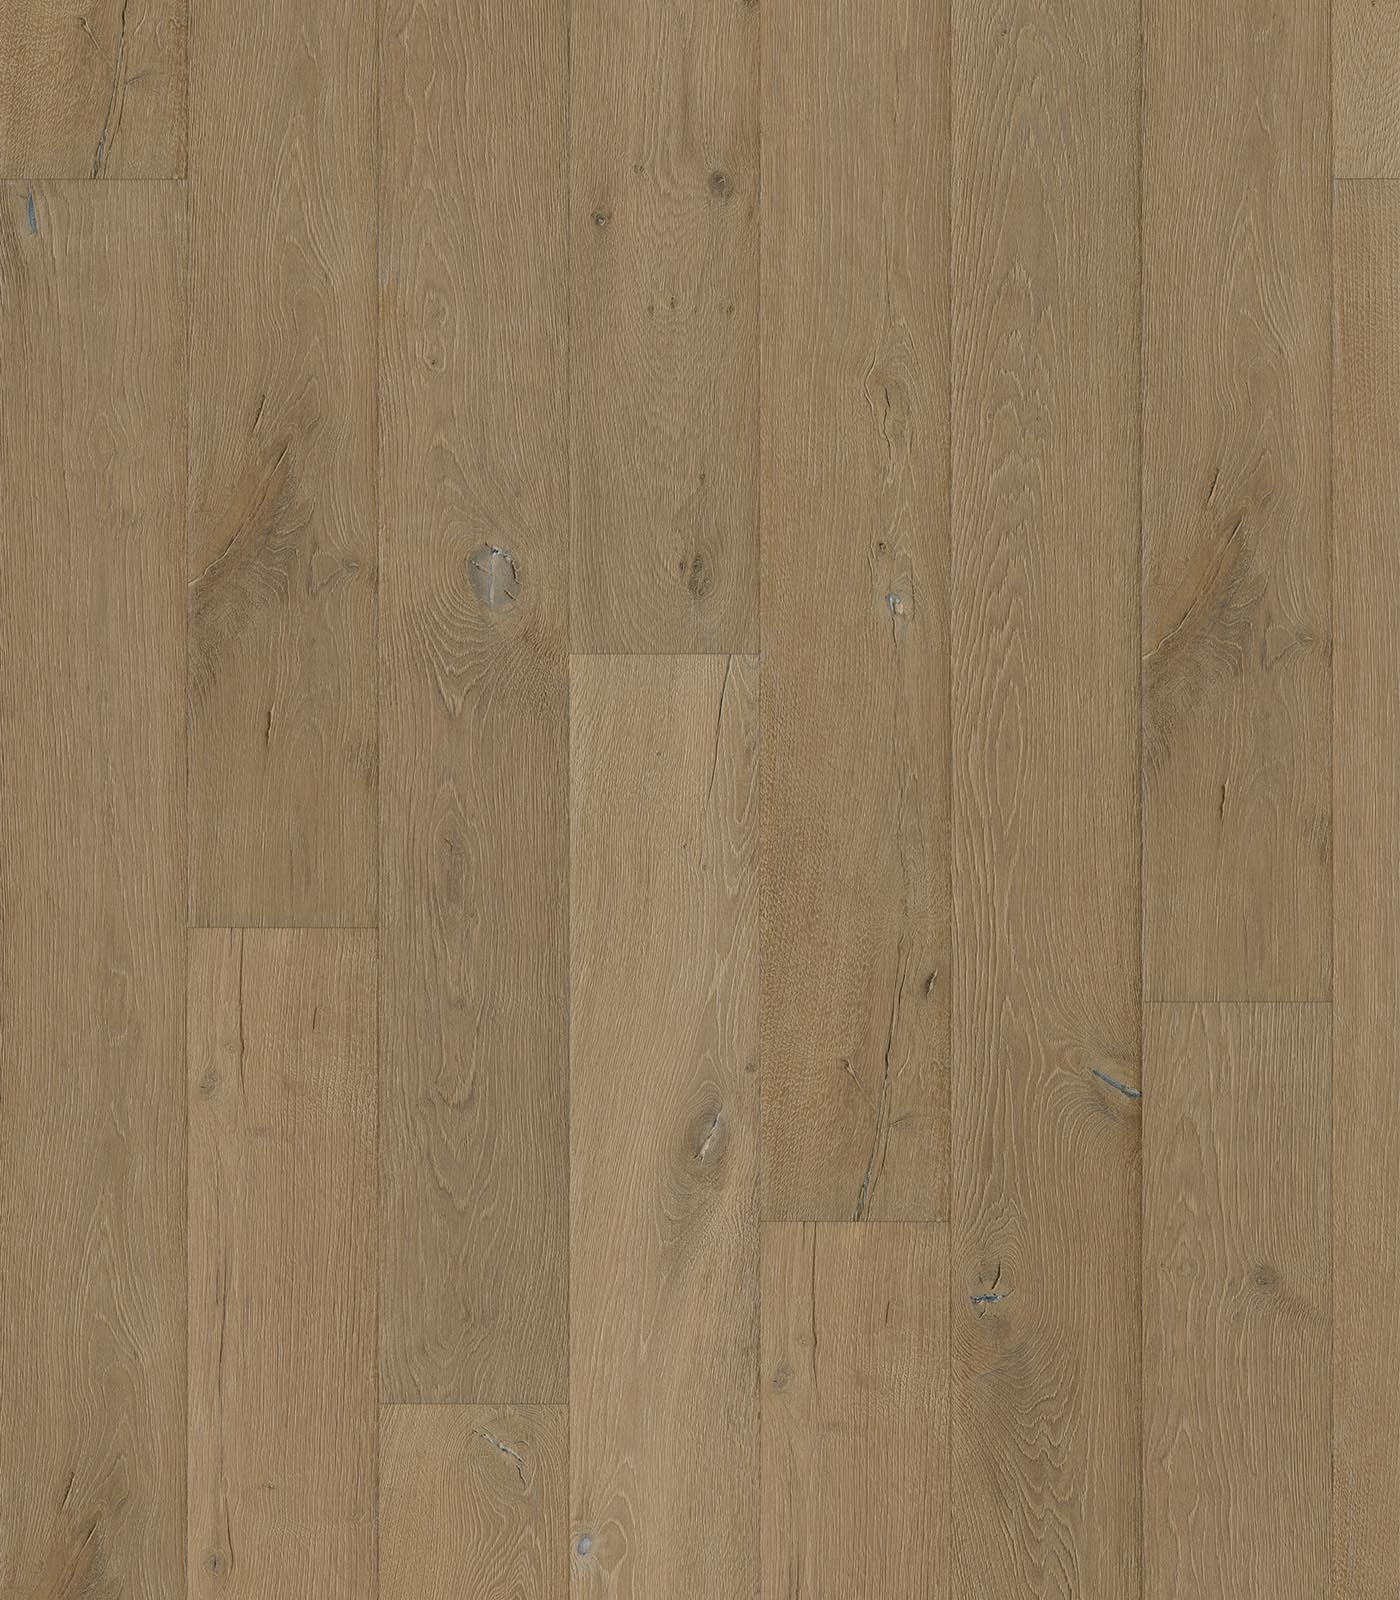 Tallinn-European Oak floors-Heritage Collection-flat